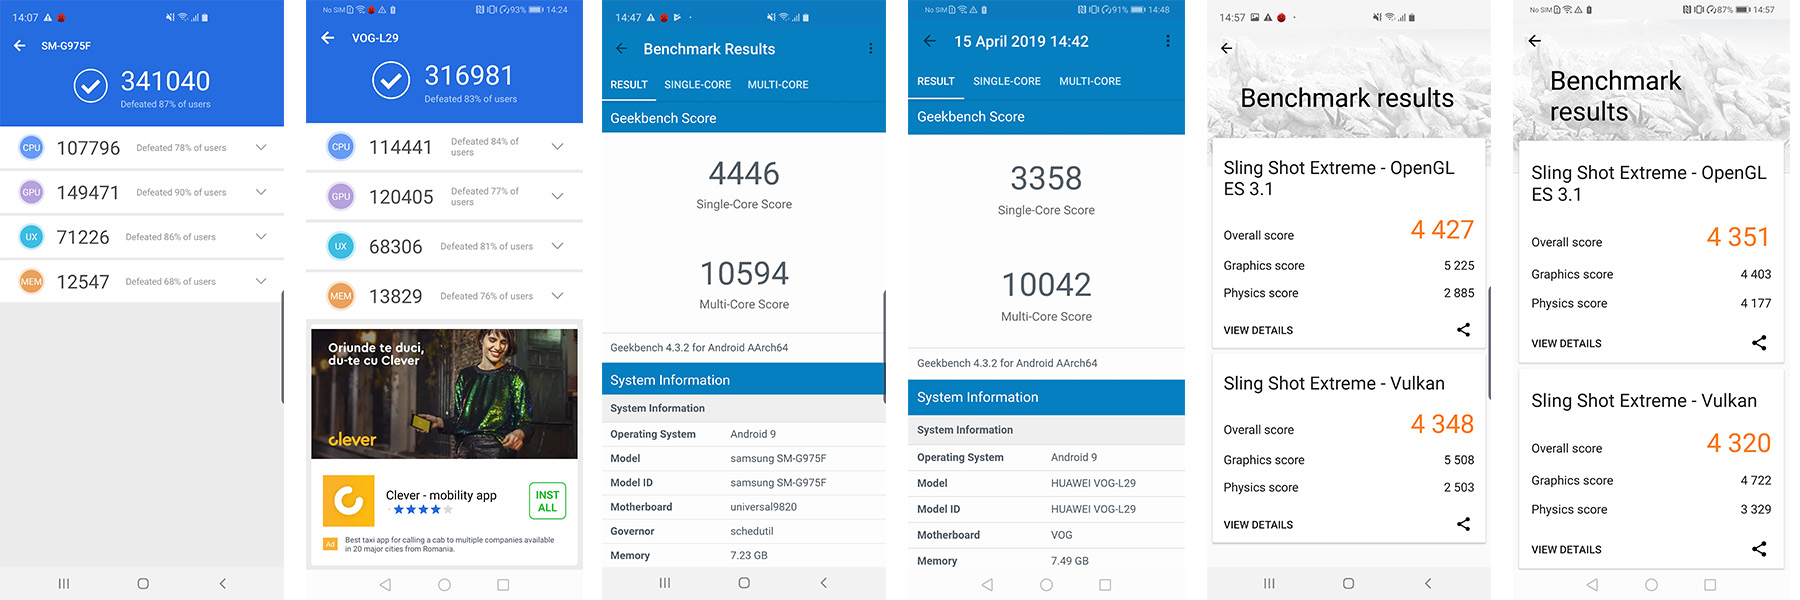 Samsung Galaxy S10 vs Huawei P30 Pro Benchmarks